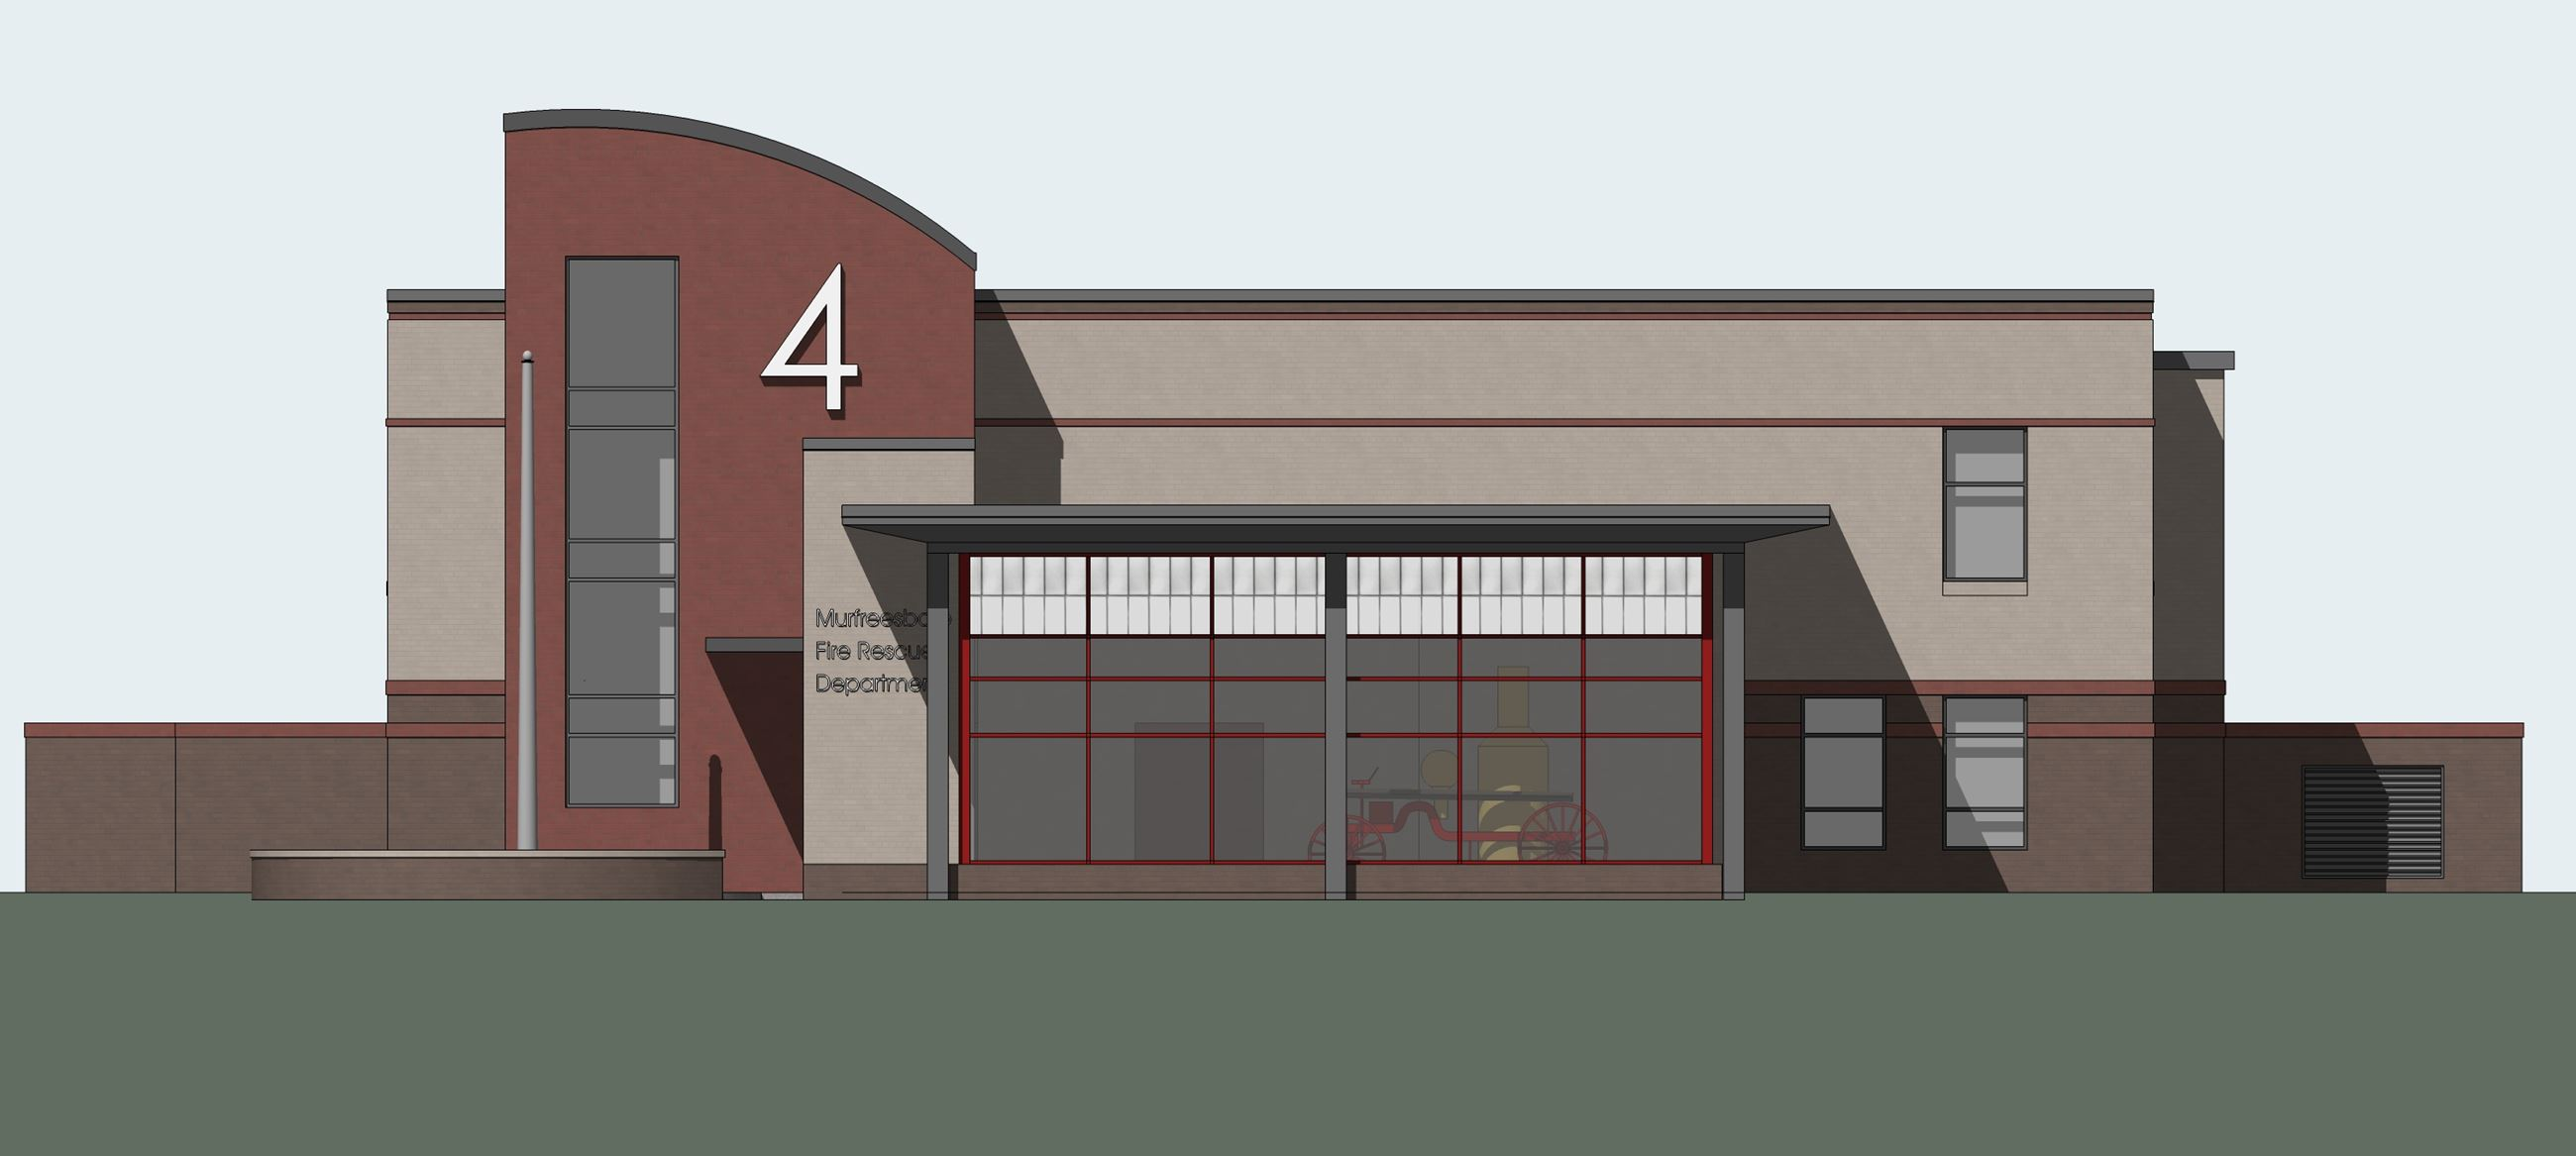 1 Station 4 artist rendition North Elevation